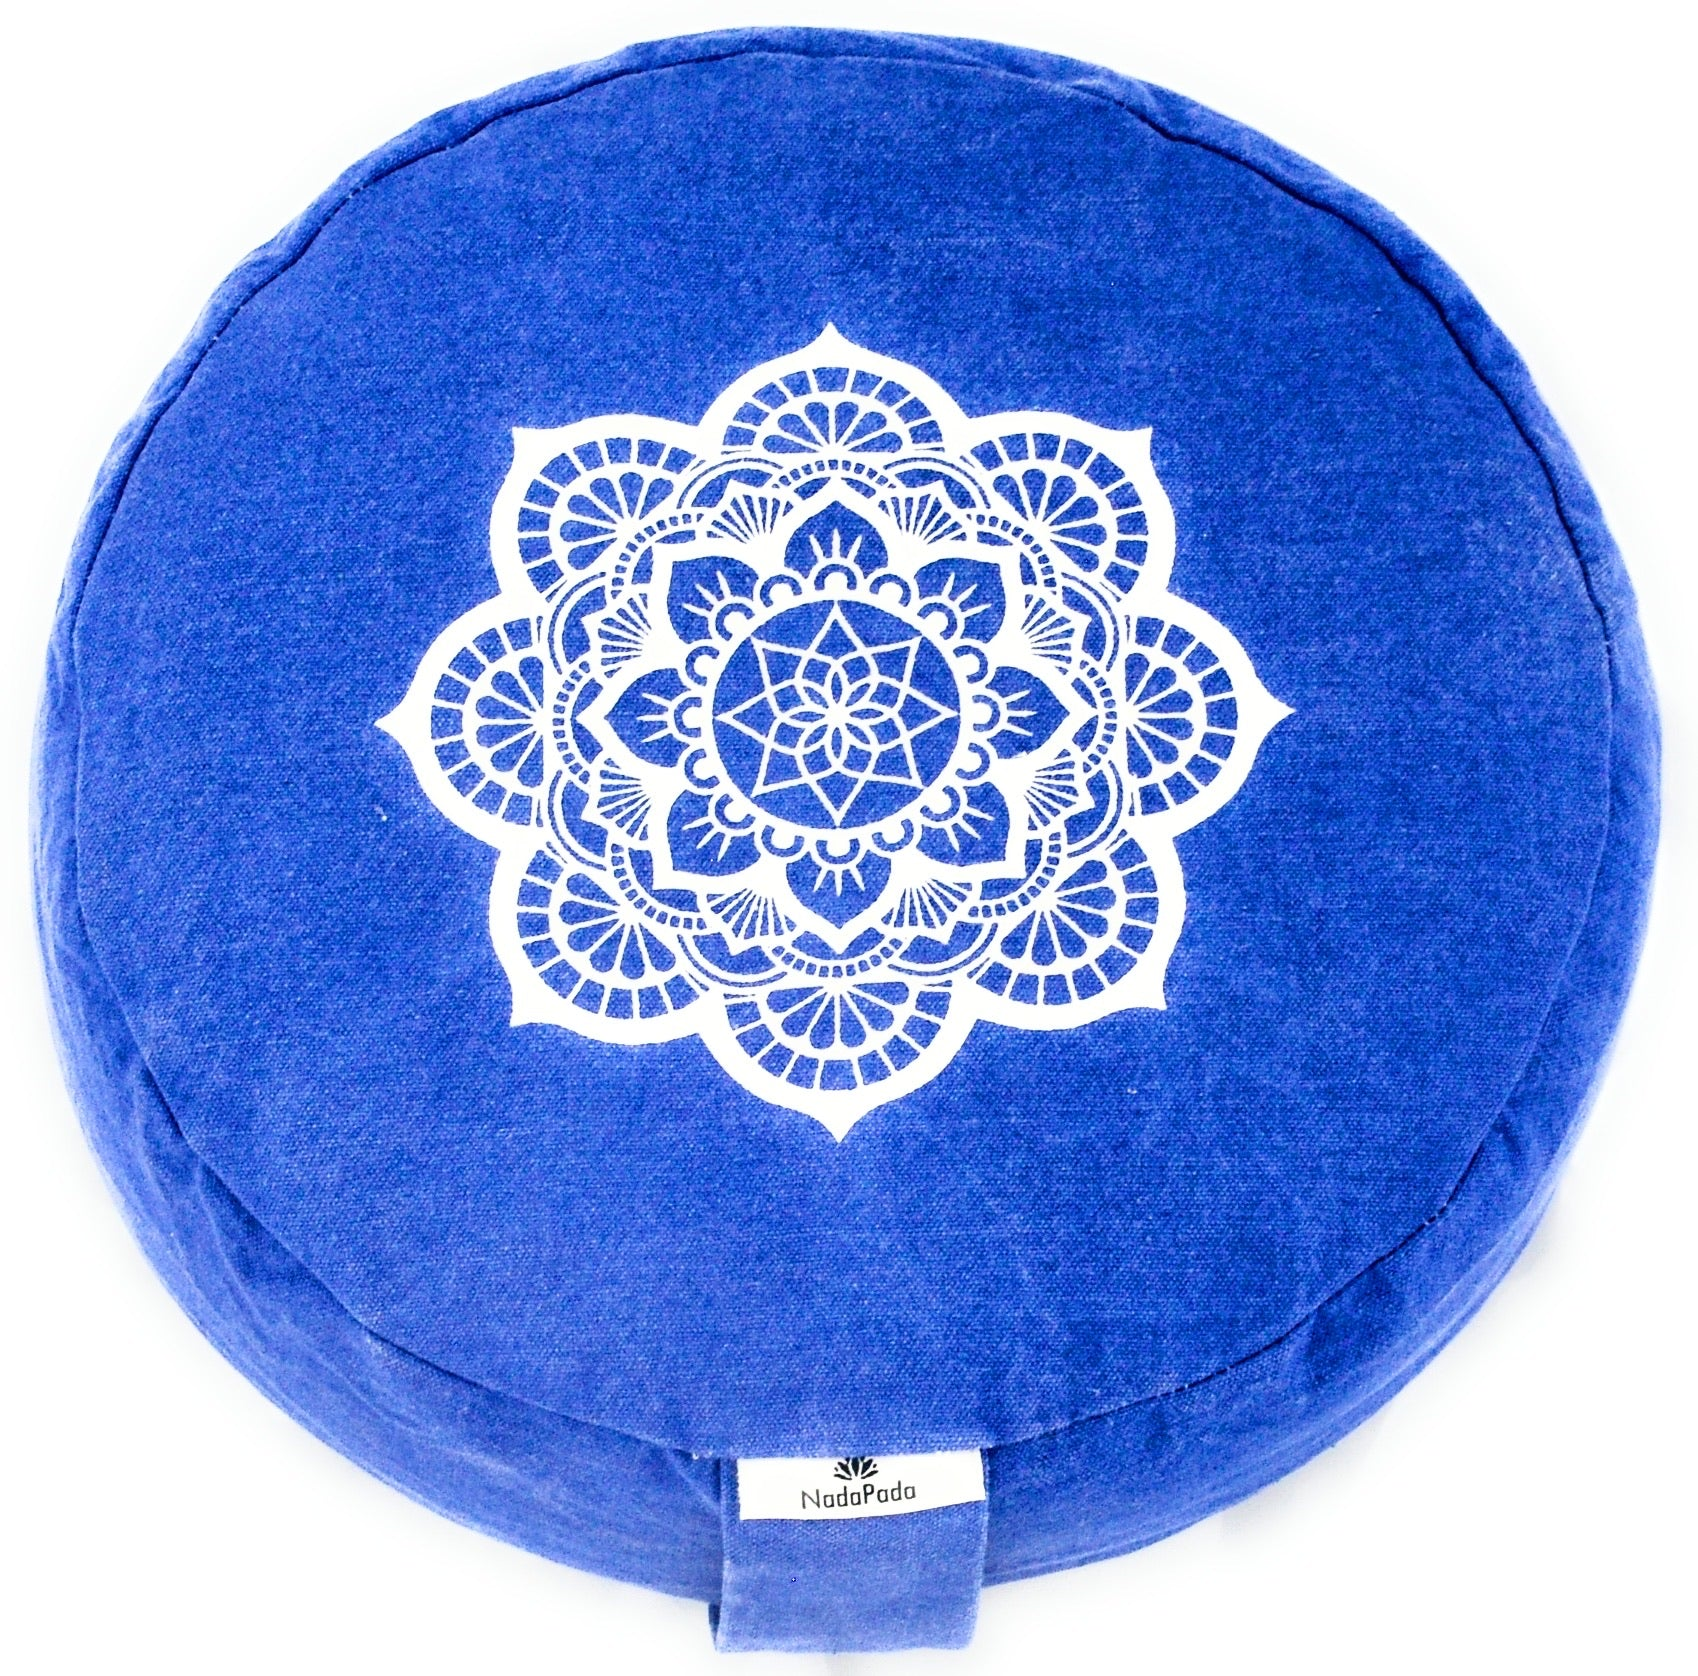 Truro Round Meditation Cushion